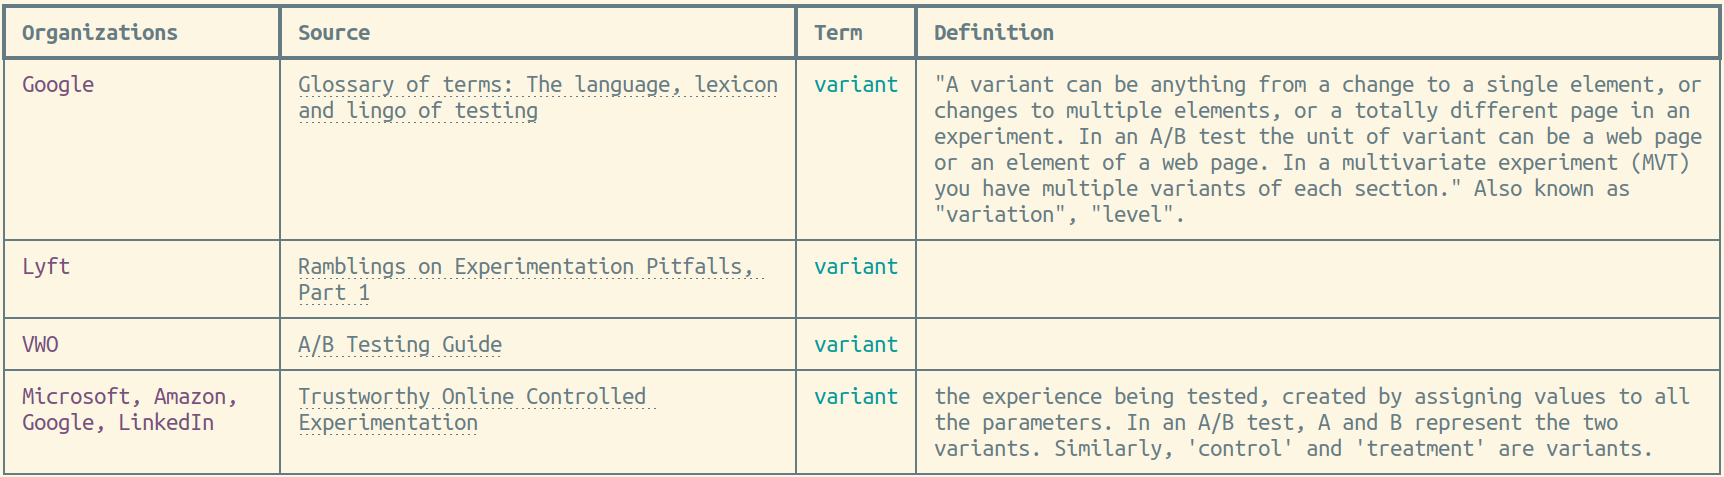 ABGlossary results for 'variant'